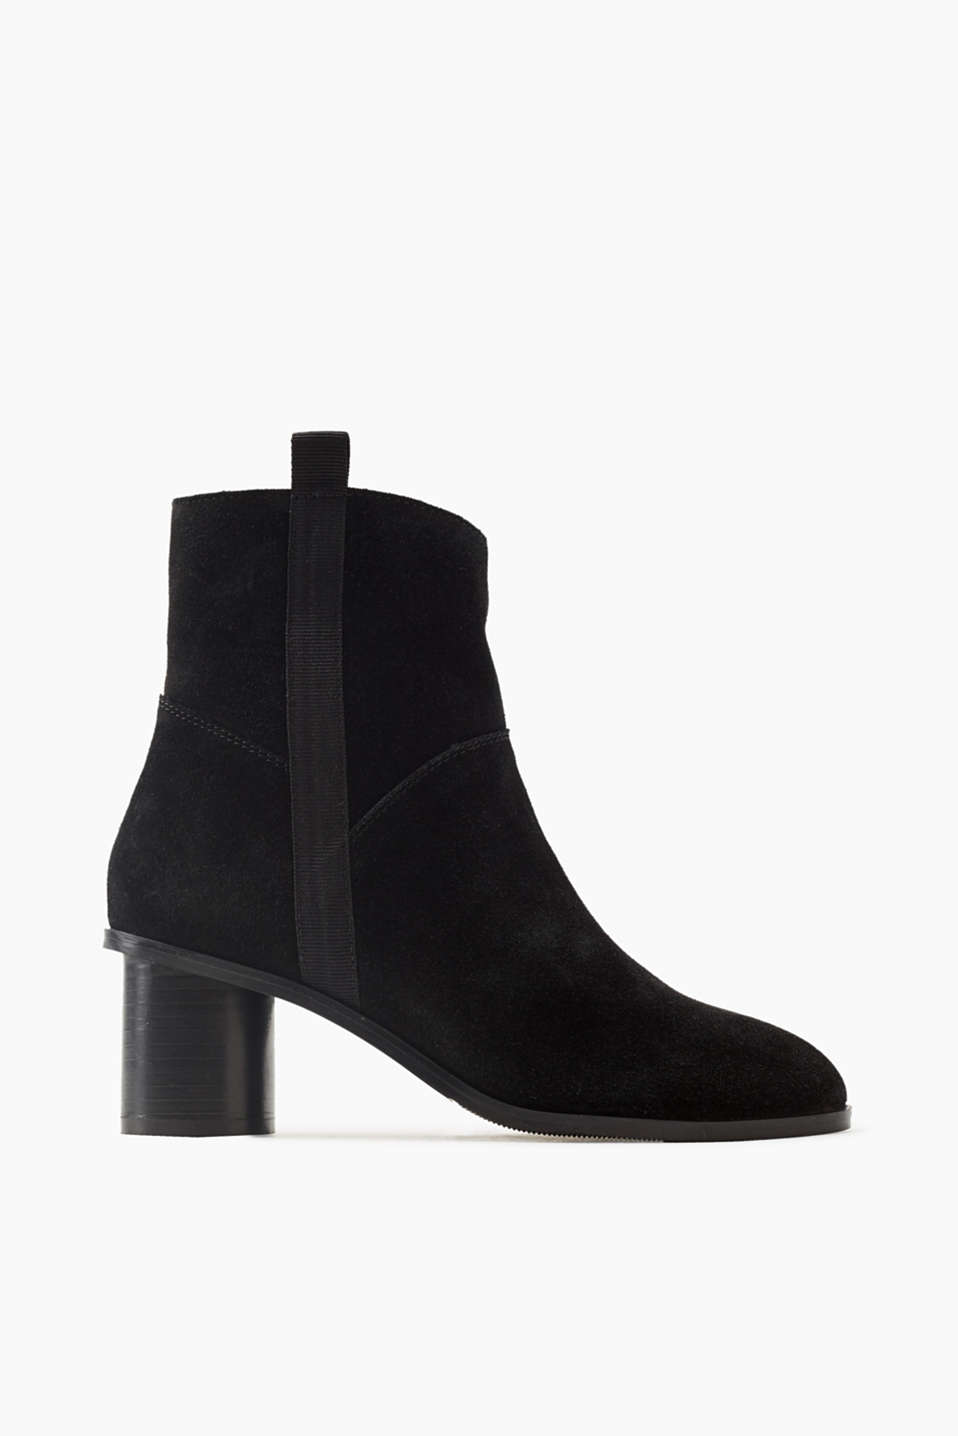 Deep black suede and a stylish cylinder heel – these ankle boots will be your autumn favourite!